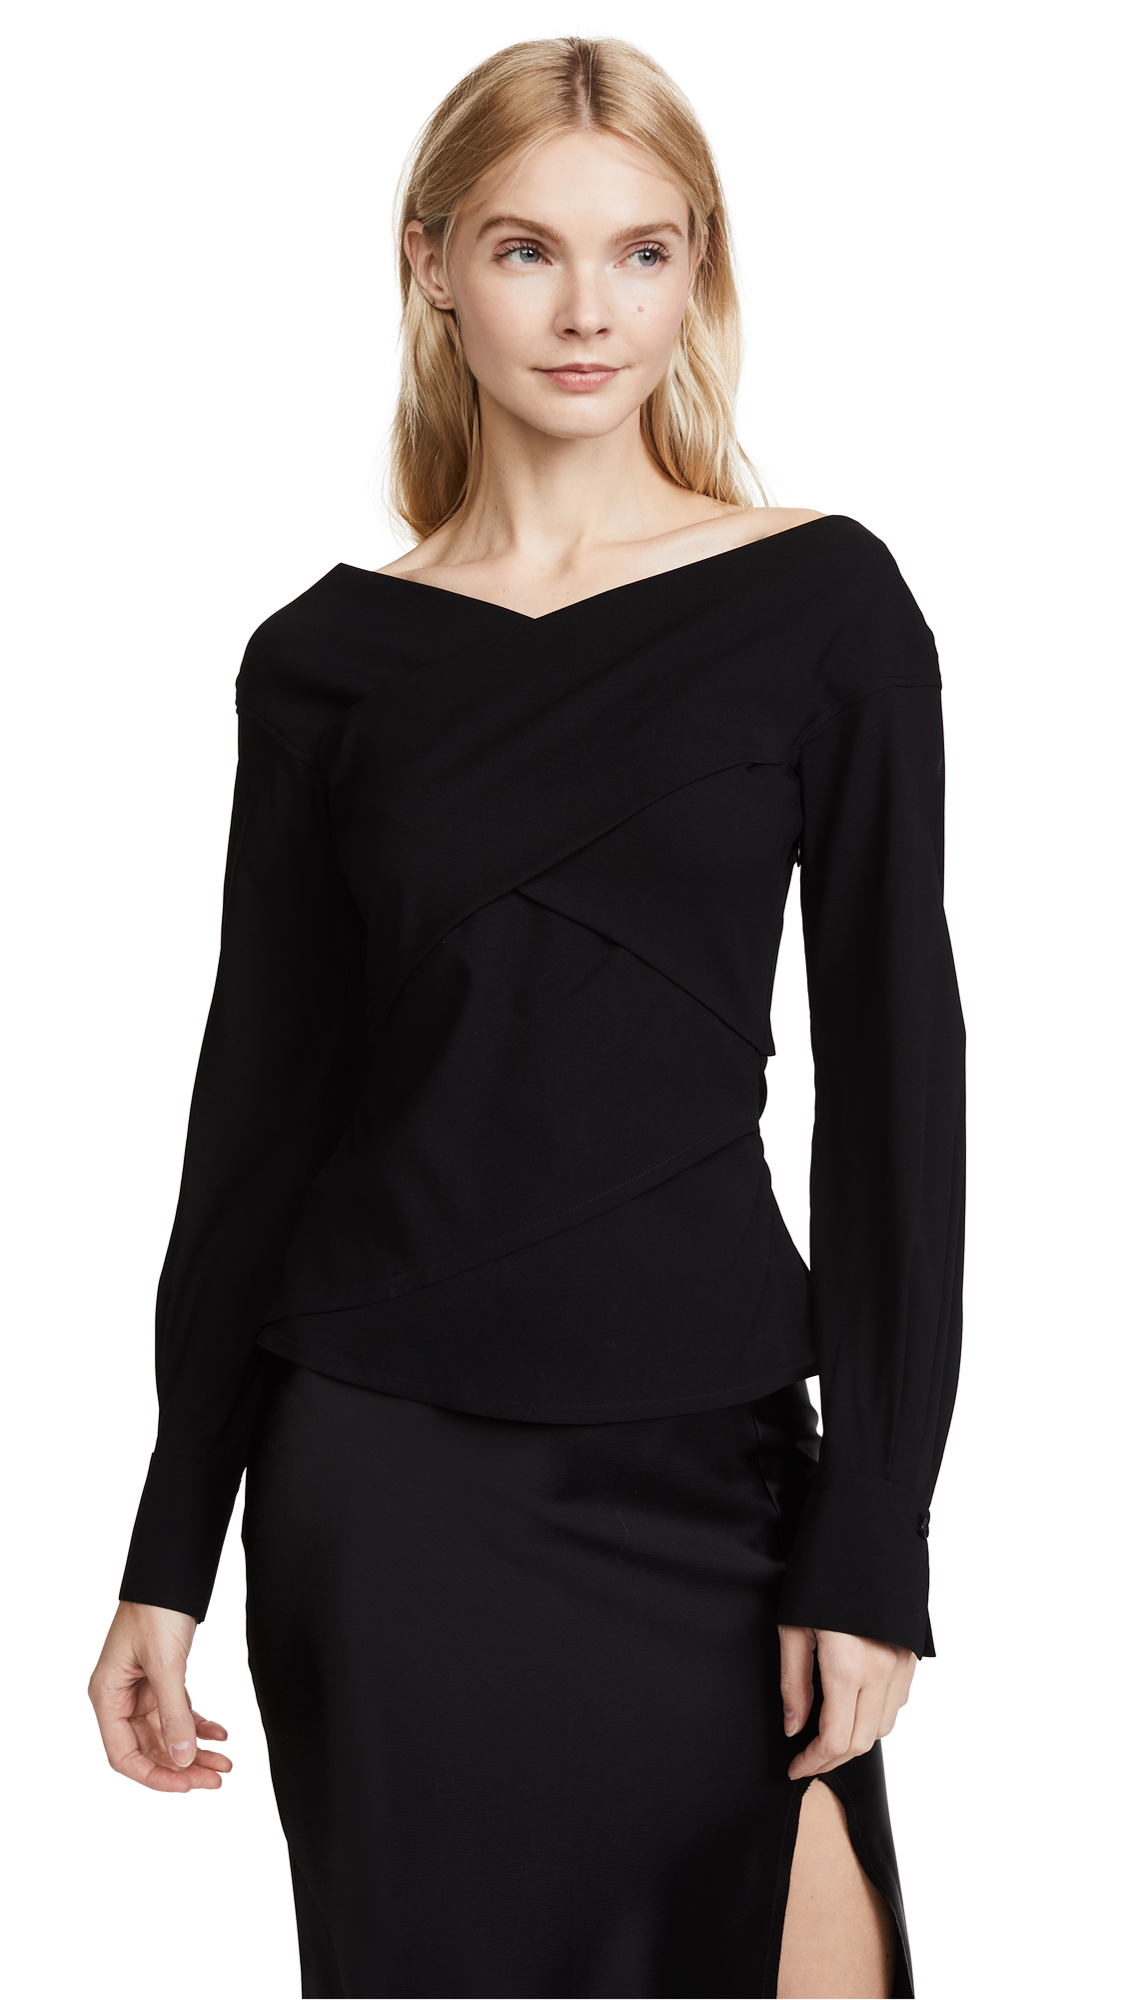 Theory Wrapped Top - Black